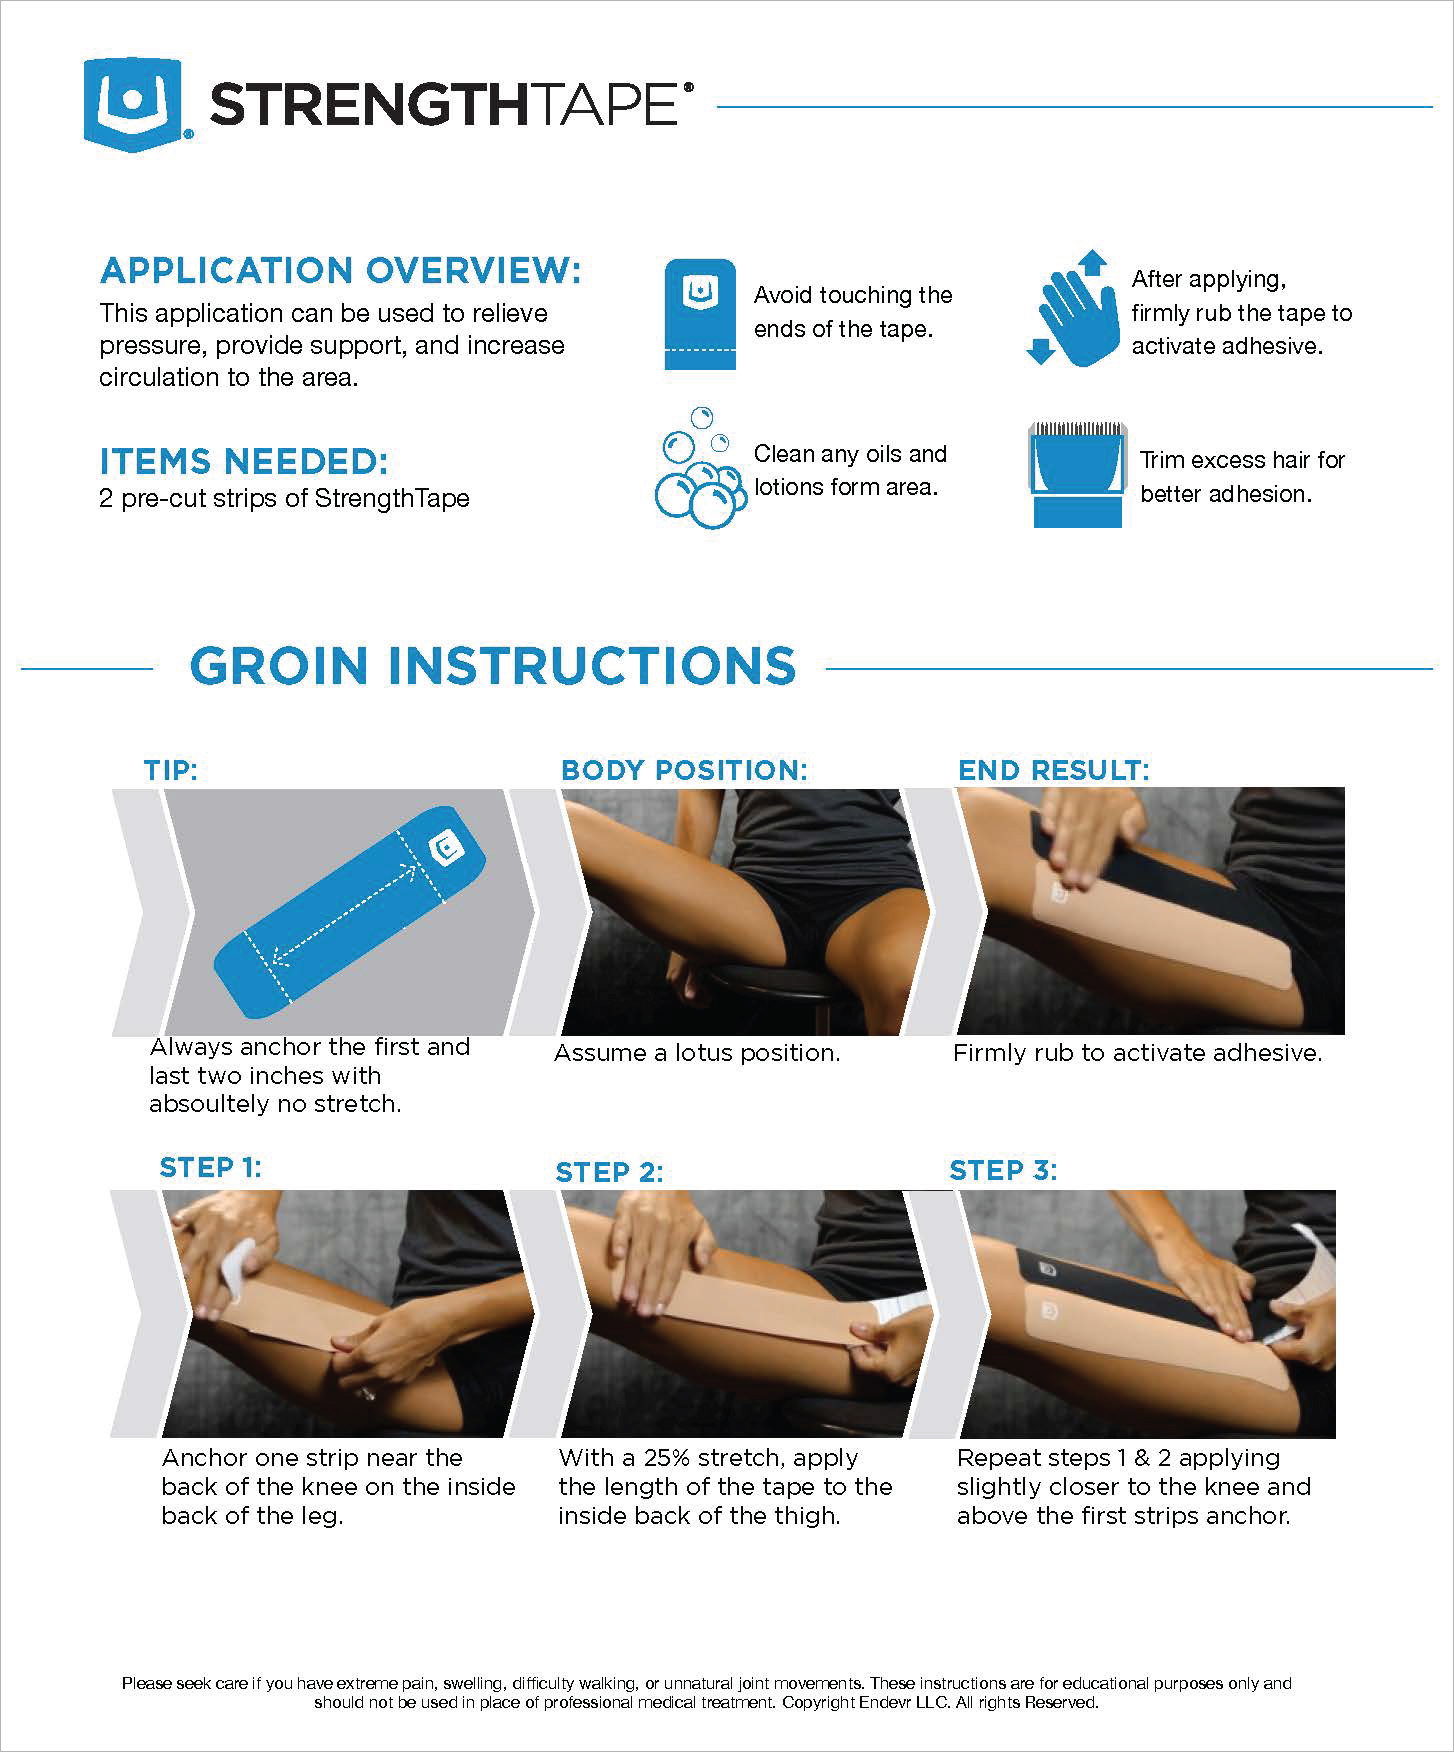 StrengthTape Groin Taping Instructions